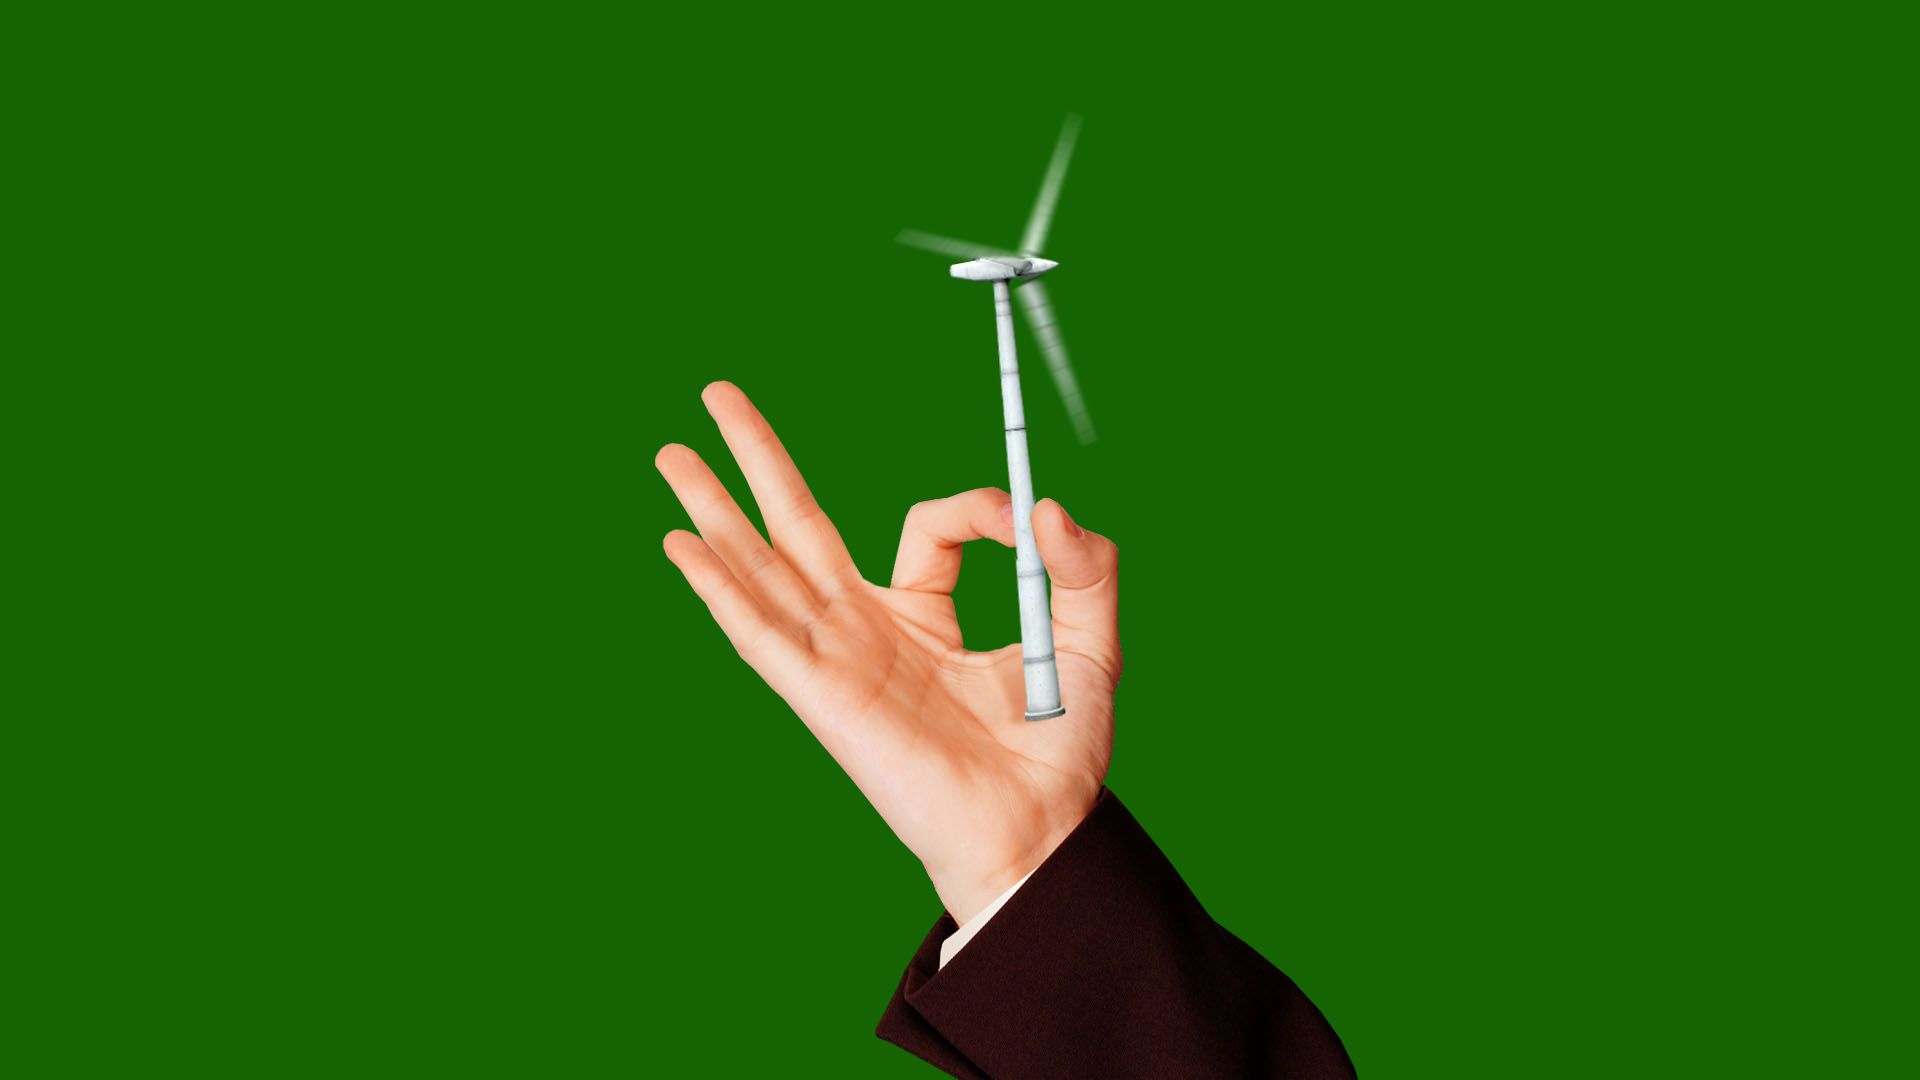 Illustration of hand in suit holding tiny wind turbine